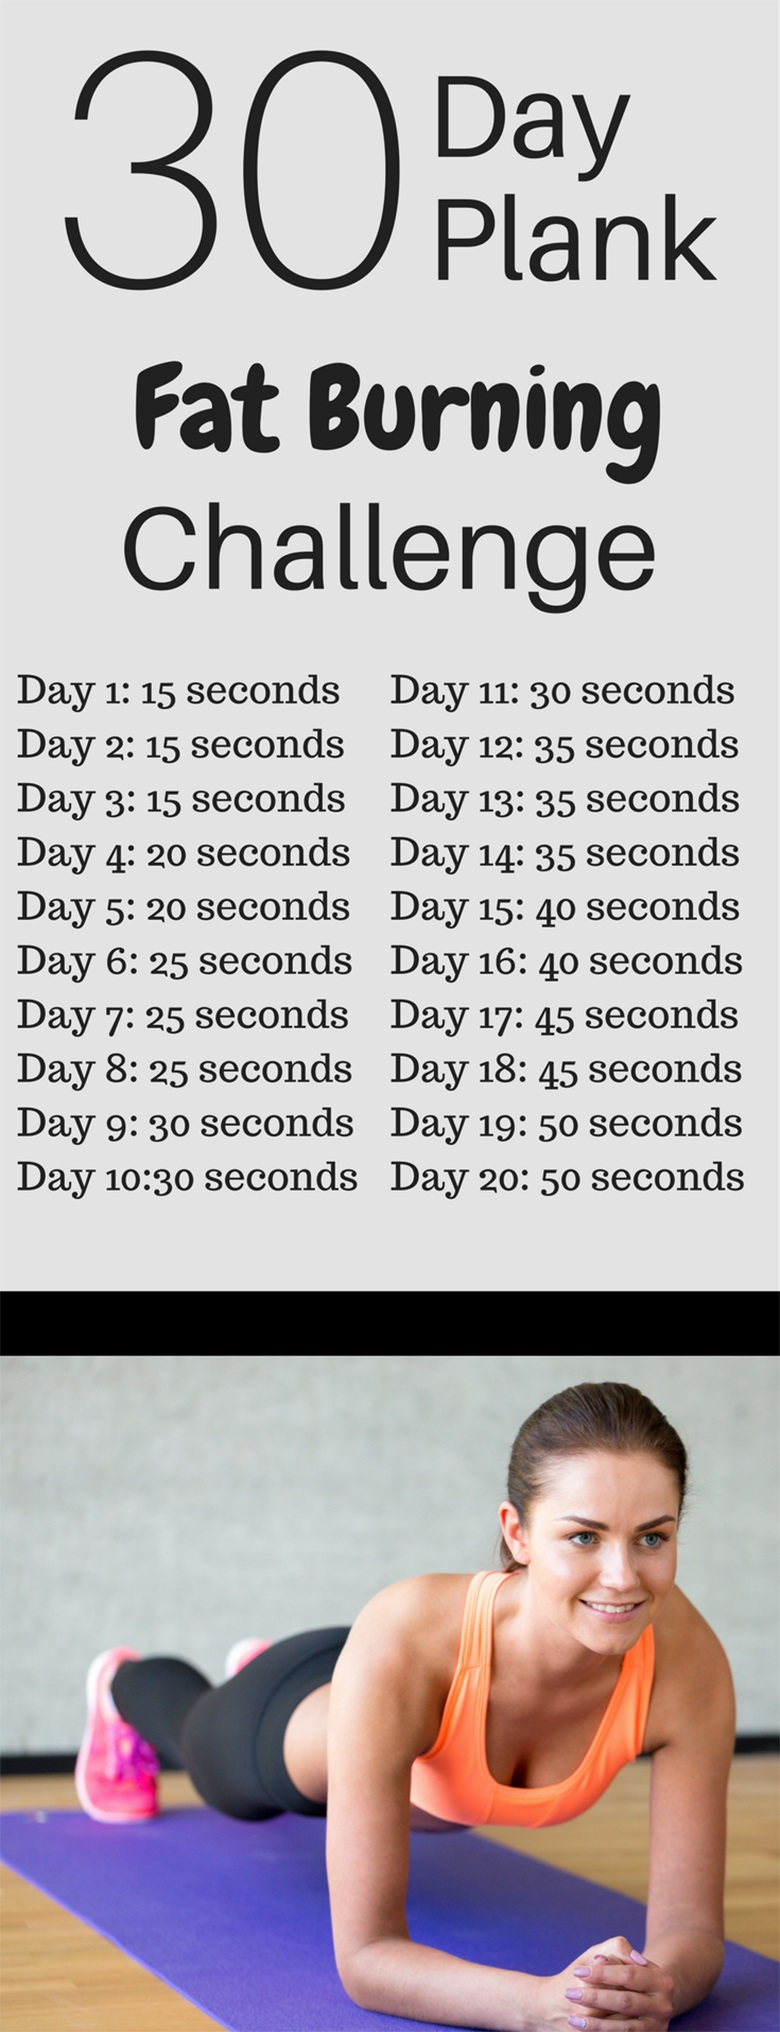 Try The 30 Day Plank Challenge For Beginners – Plank ...